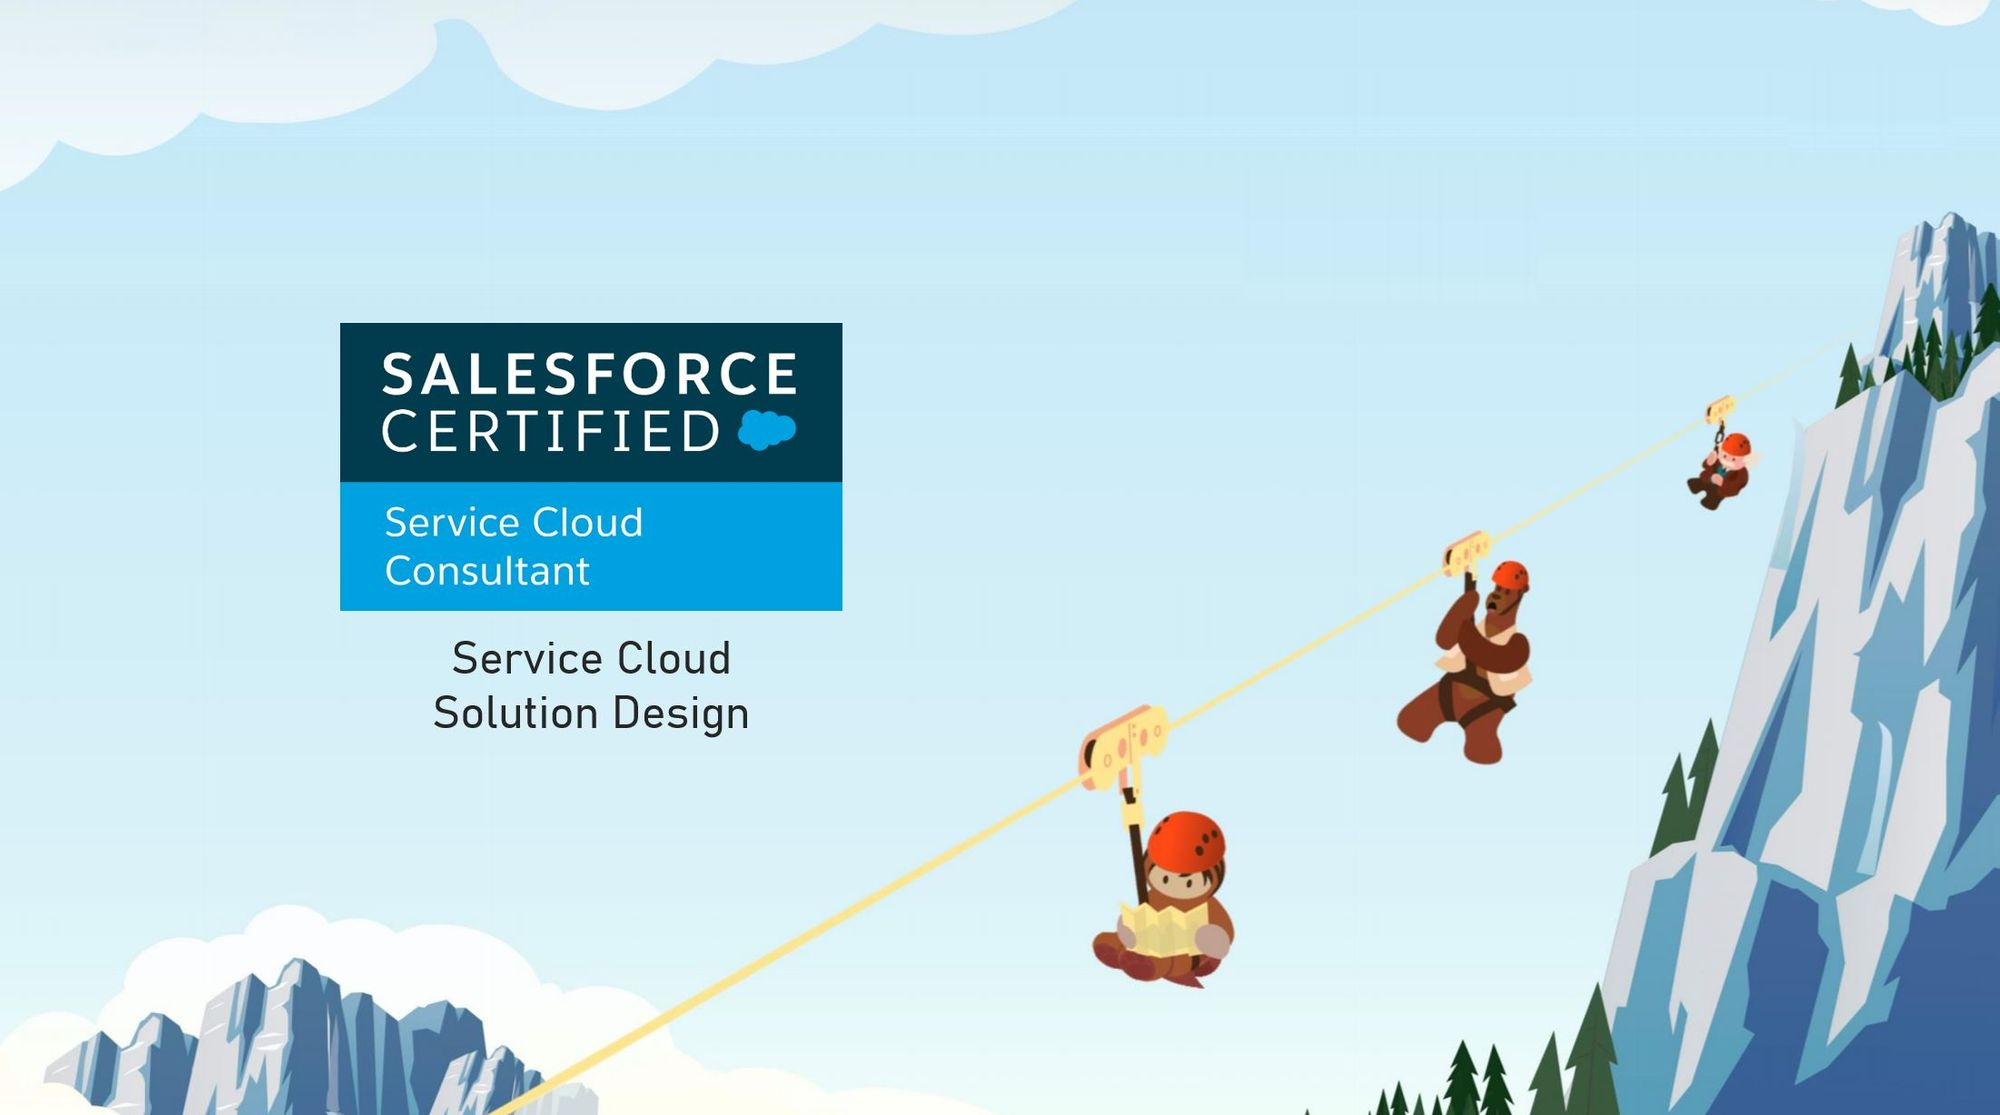 Salesforce Service Cloud Consultant Exam Preparation: Service Cloud Solution Design